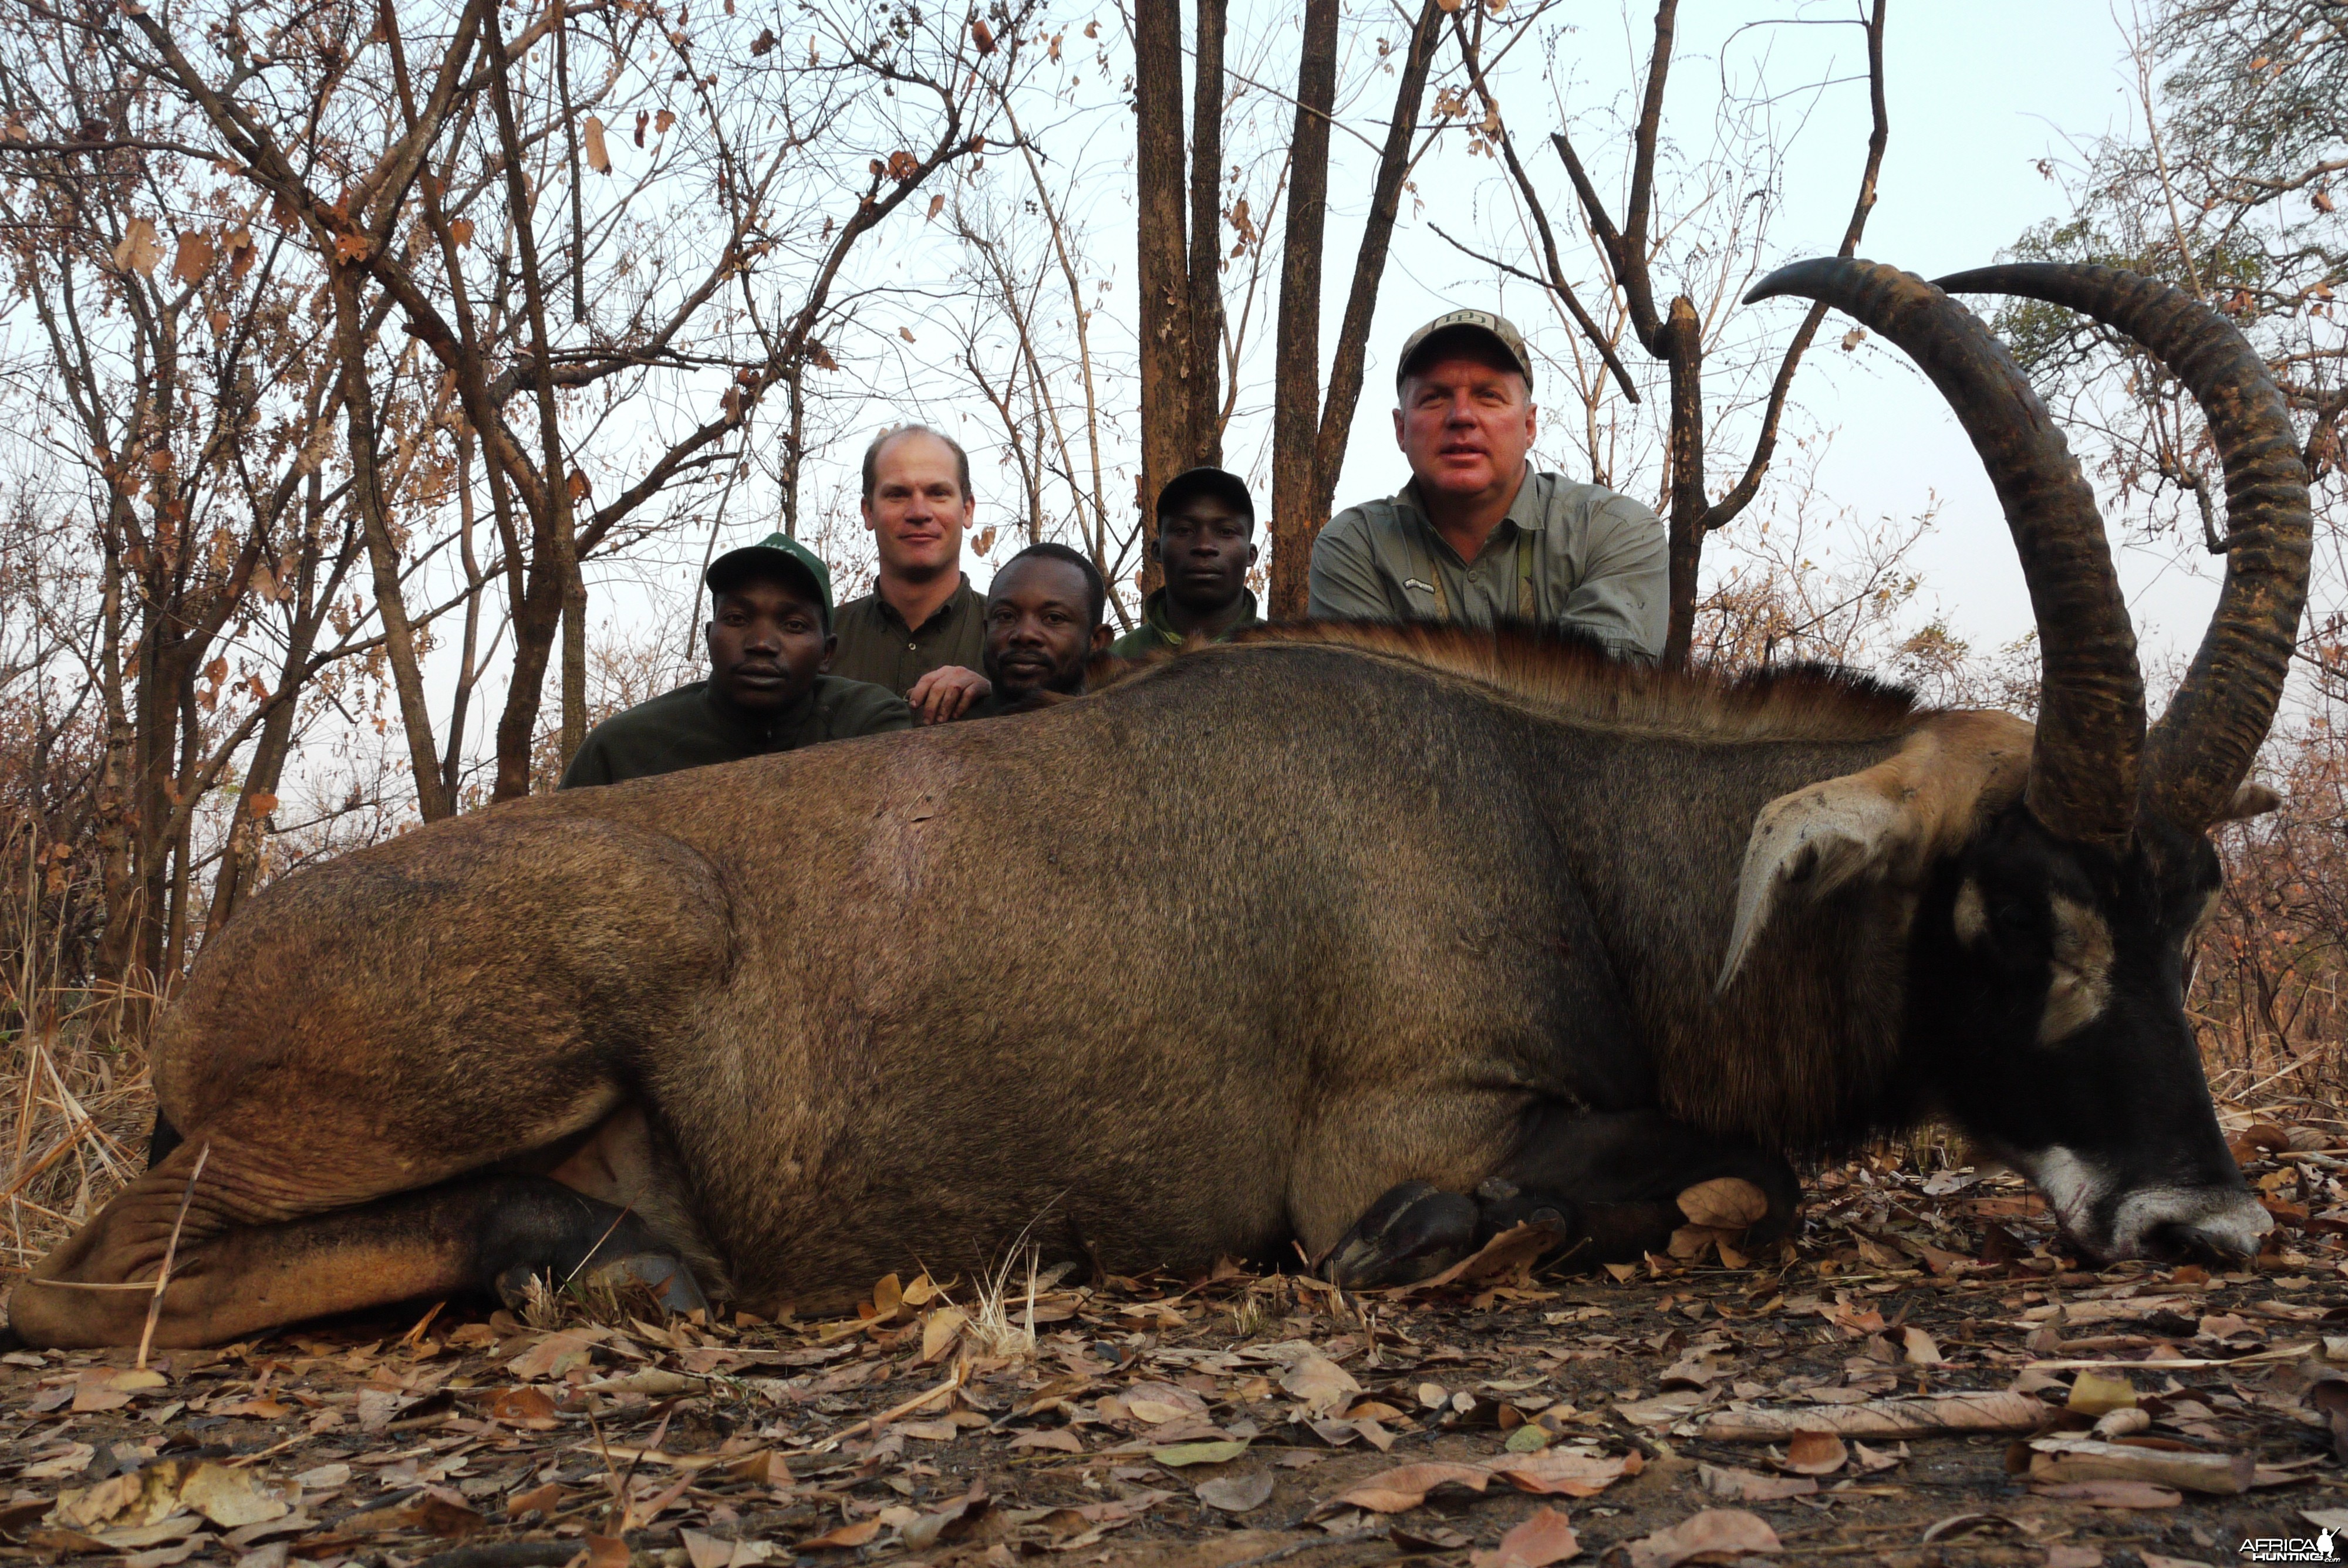 Roan hunted in Central African Republic with CAWA